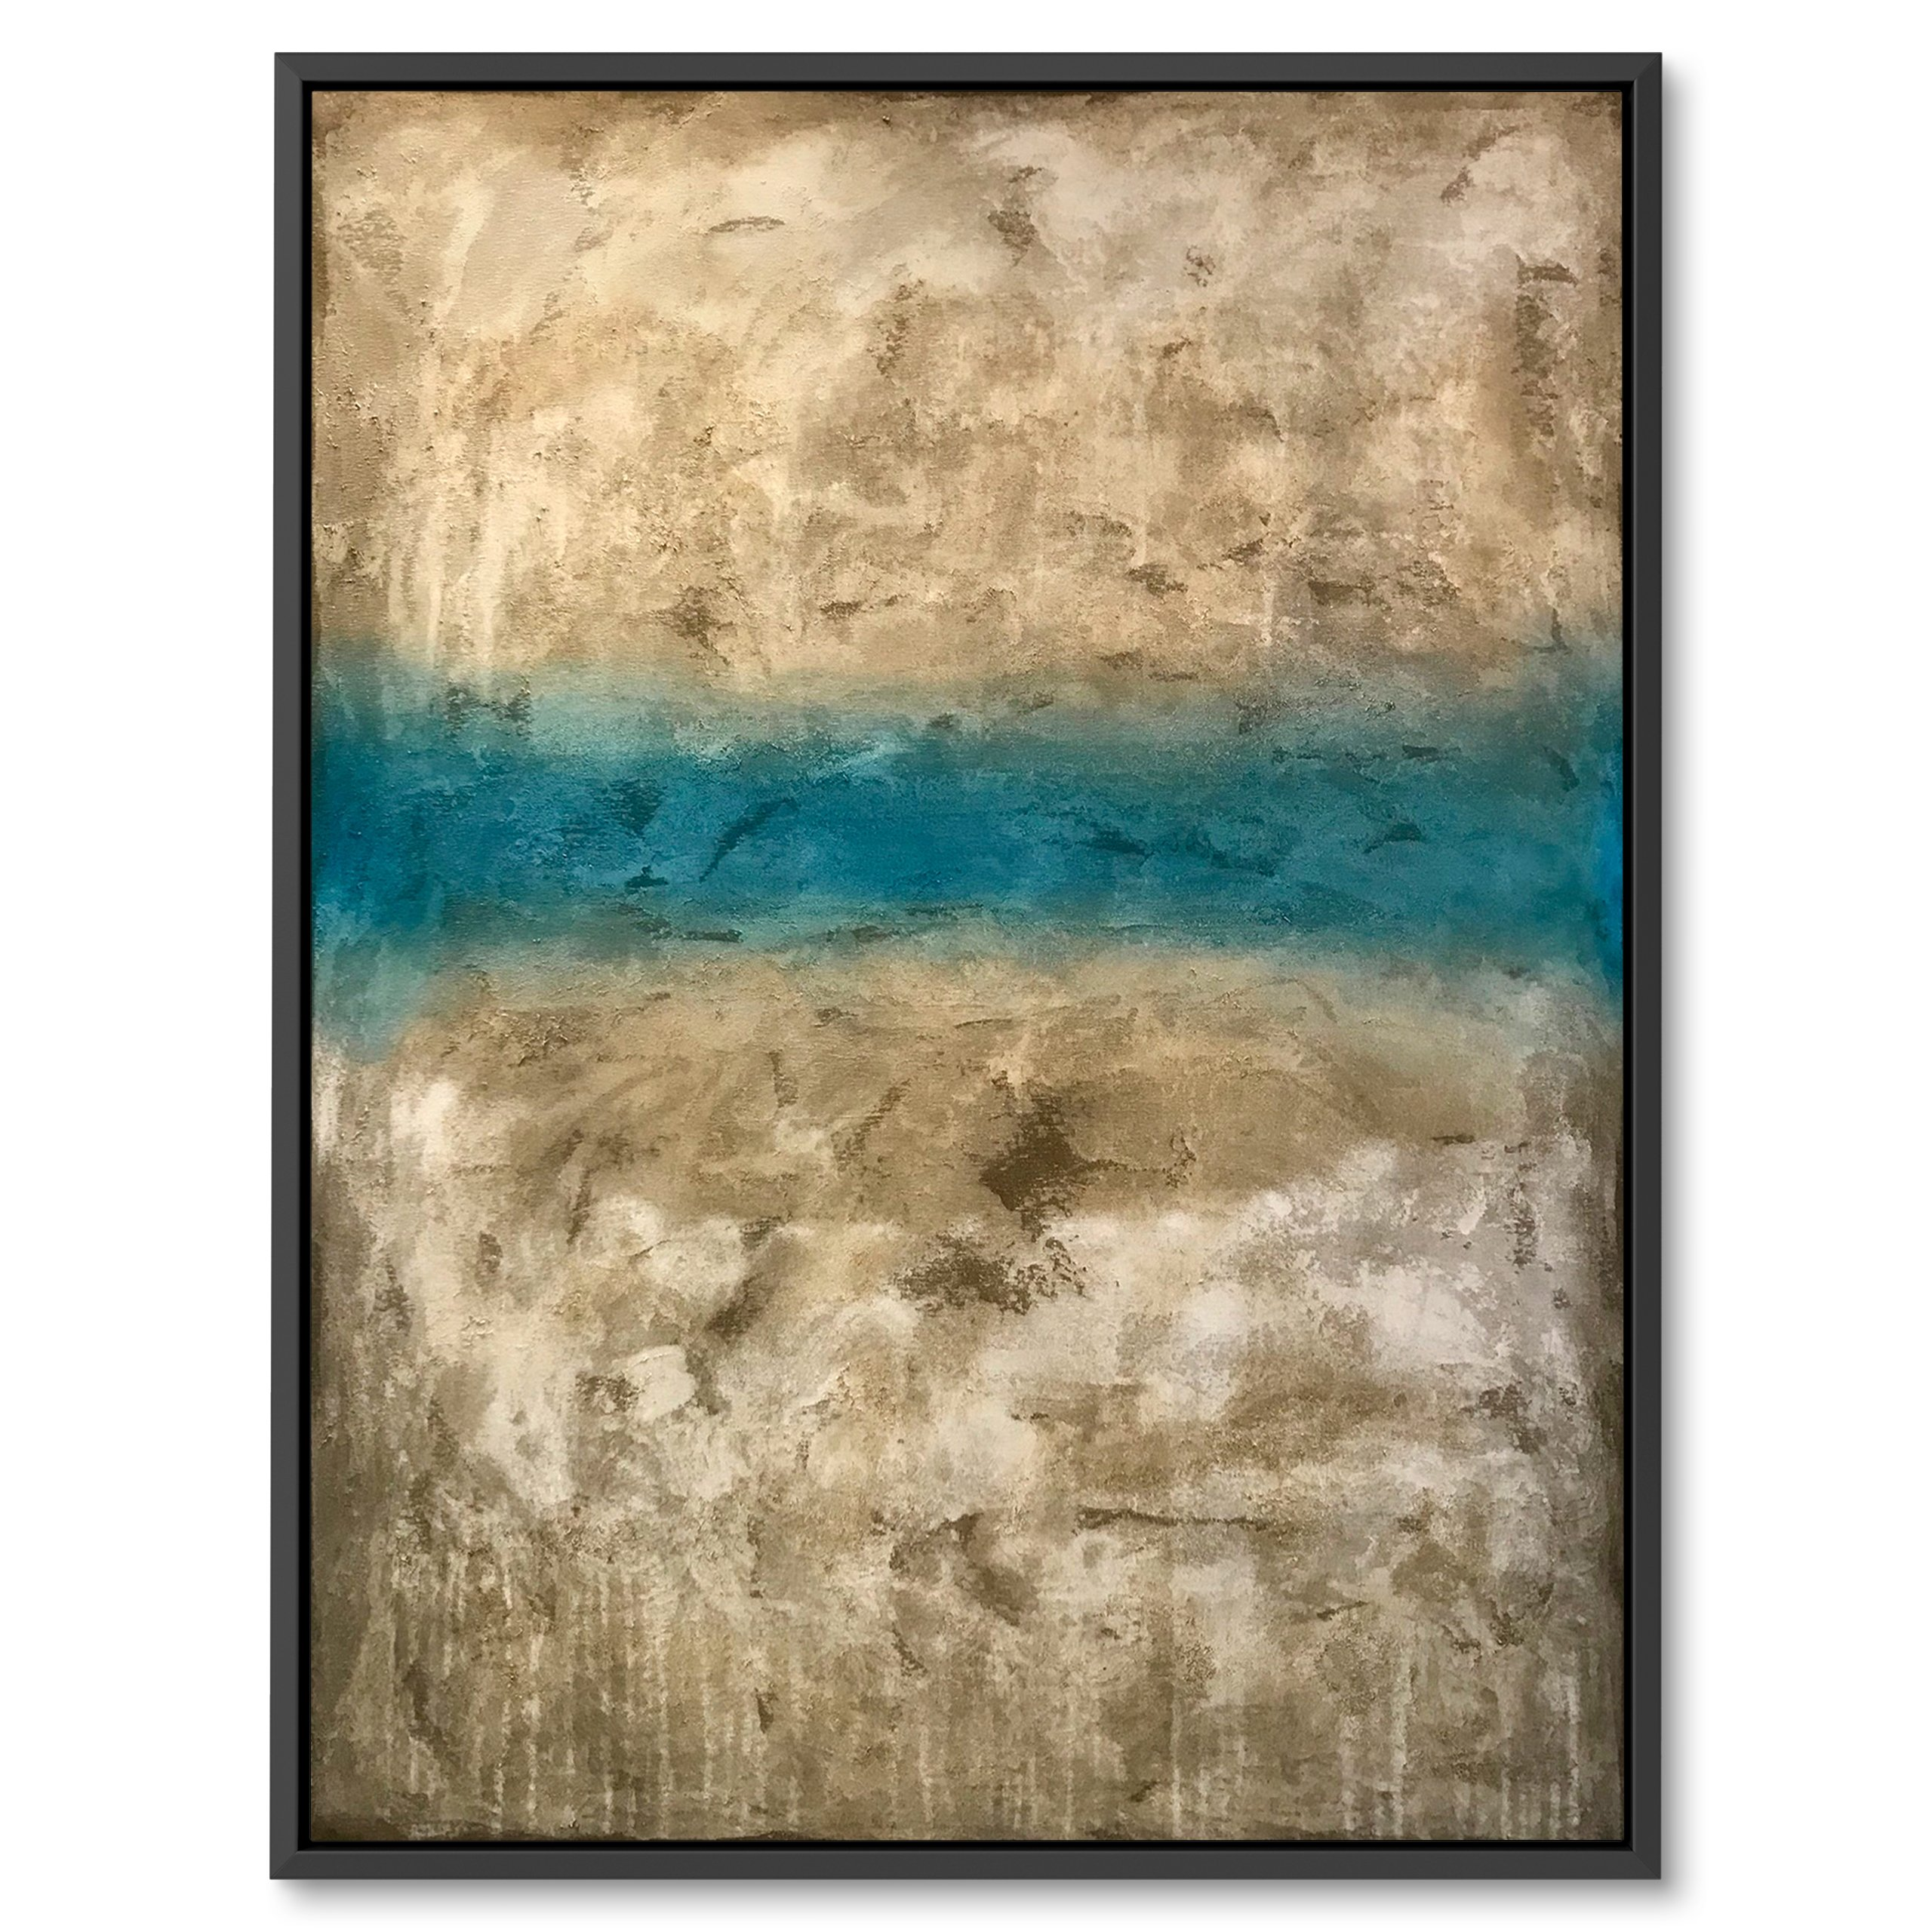 Biege and light blue abstract art by benny moshe for sale. Perfect for wall decor